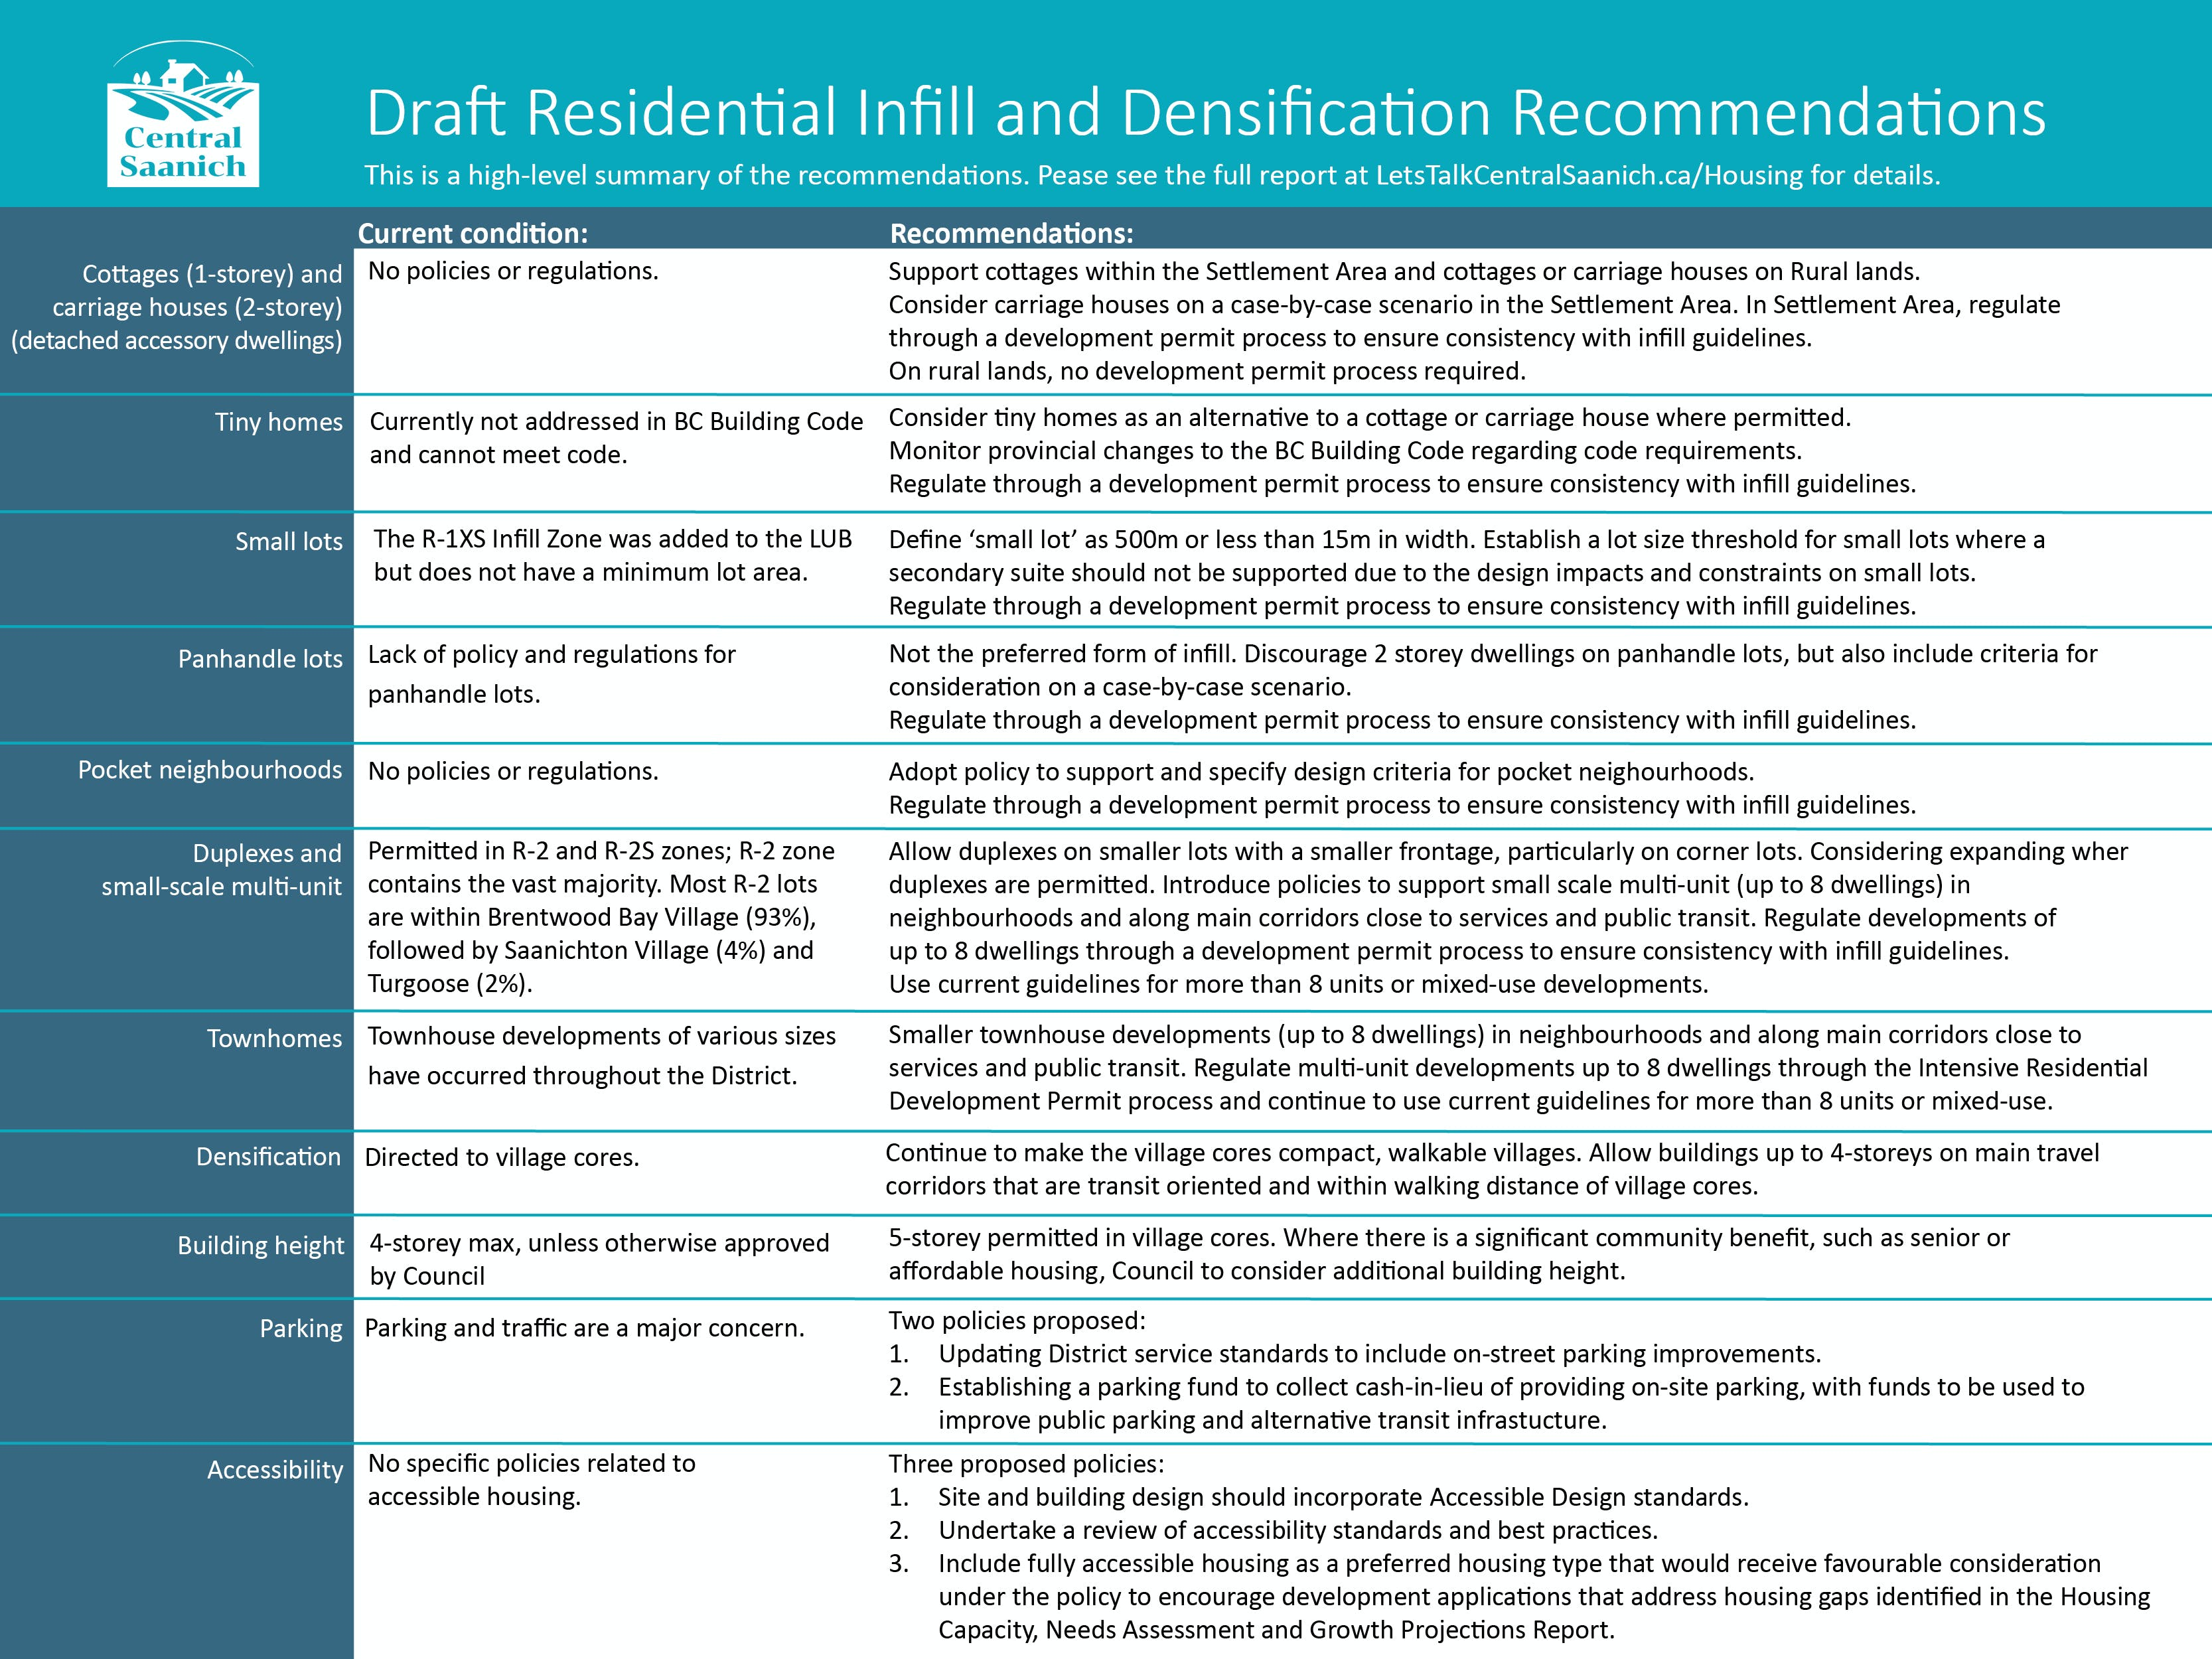 Draft infill recommendations